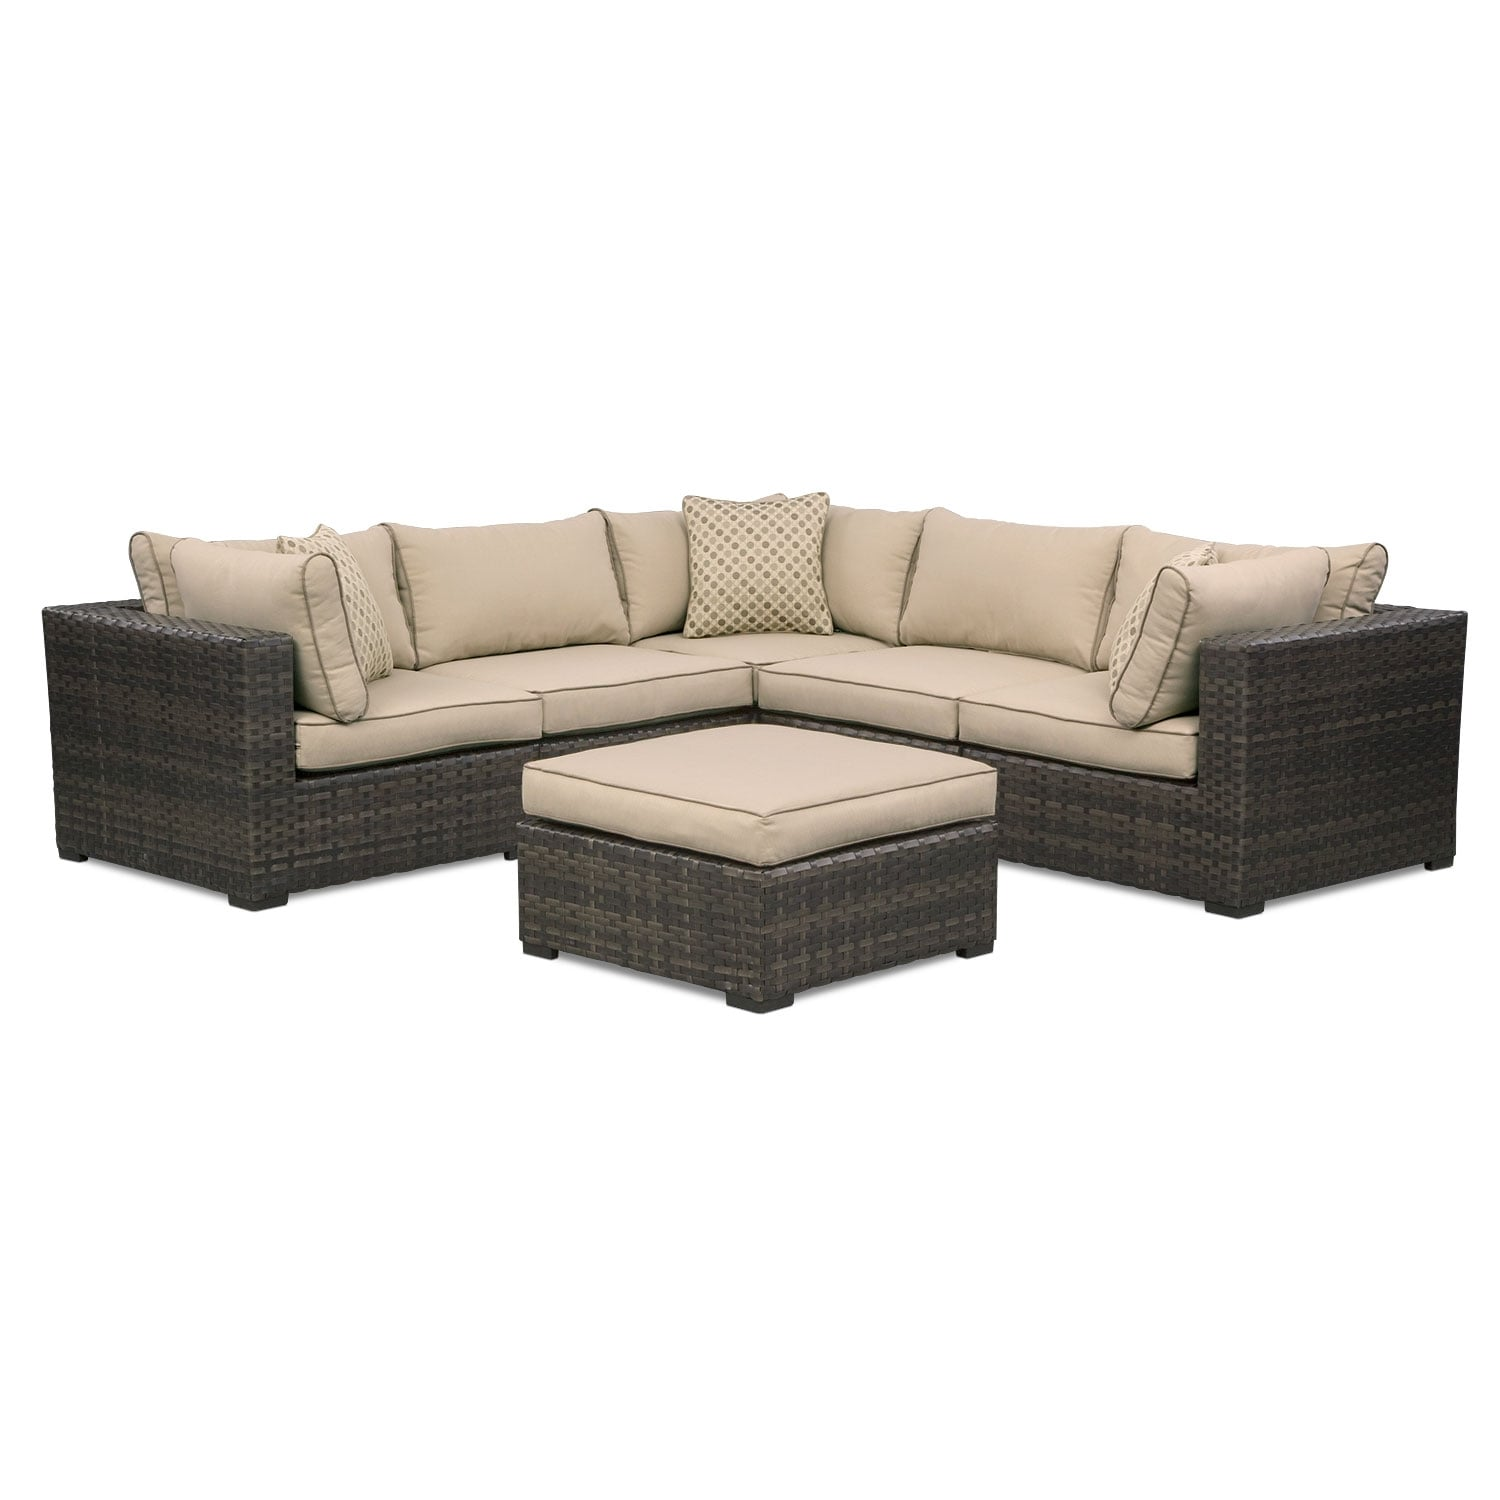 Outdoor Furniture - Regatta 5-Piece Outdoor Sectional and Ottoman Set - Brown